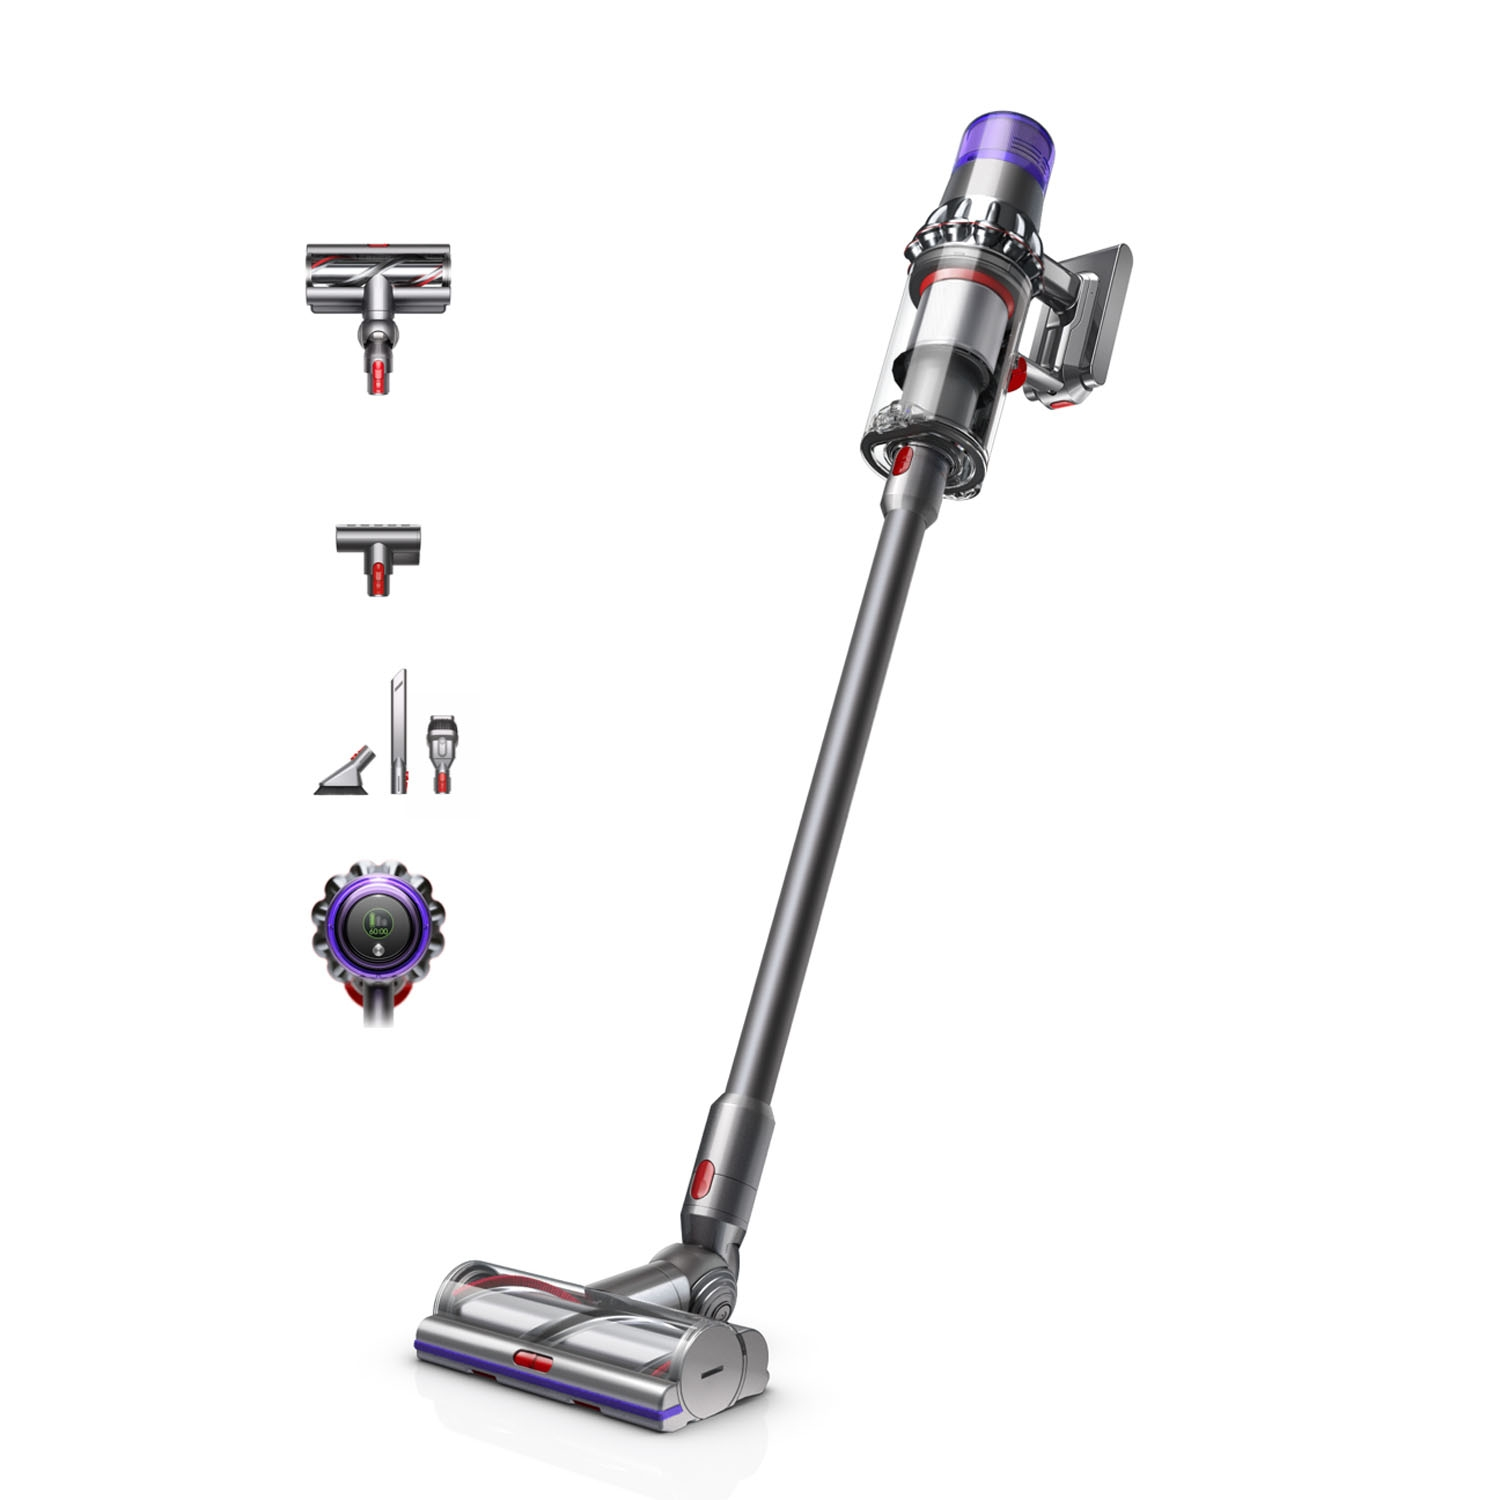 Image of Dyson V11 Torque Drive Cordless Vacuum Cleaner